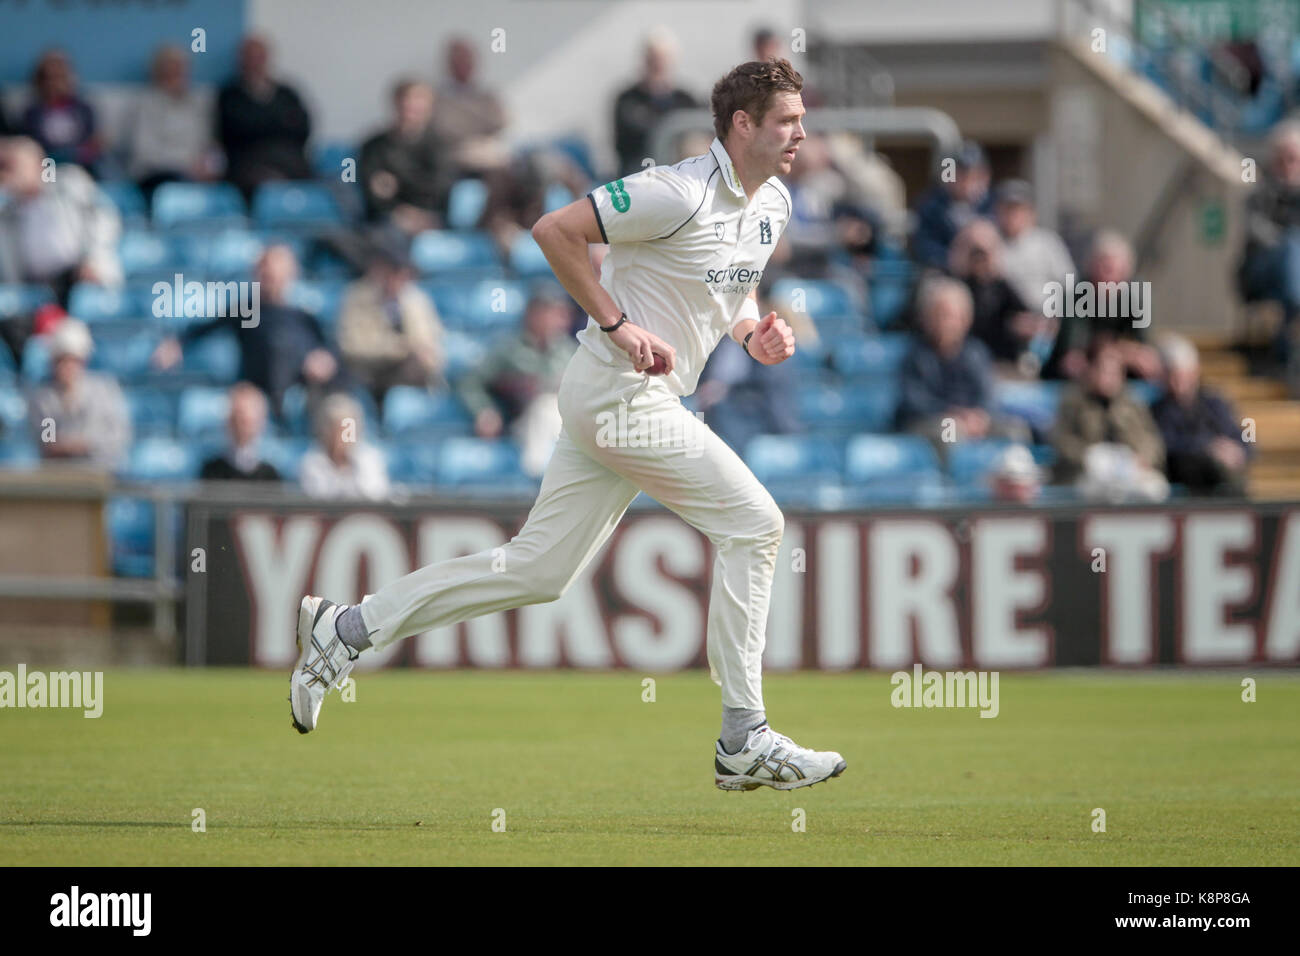 Leeds, UK. 20th Sep, 2017. Boyd Rankin (Warwickshire CCC) runs in to bowl at Jack Leaning (Yorkshire CCC) Yorkshire - Stock Image